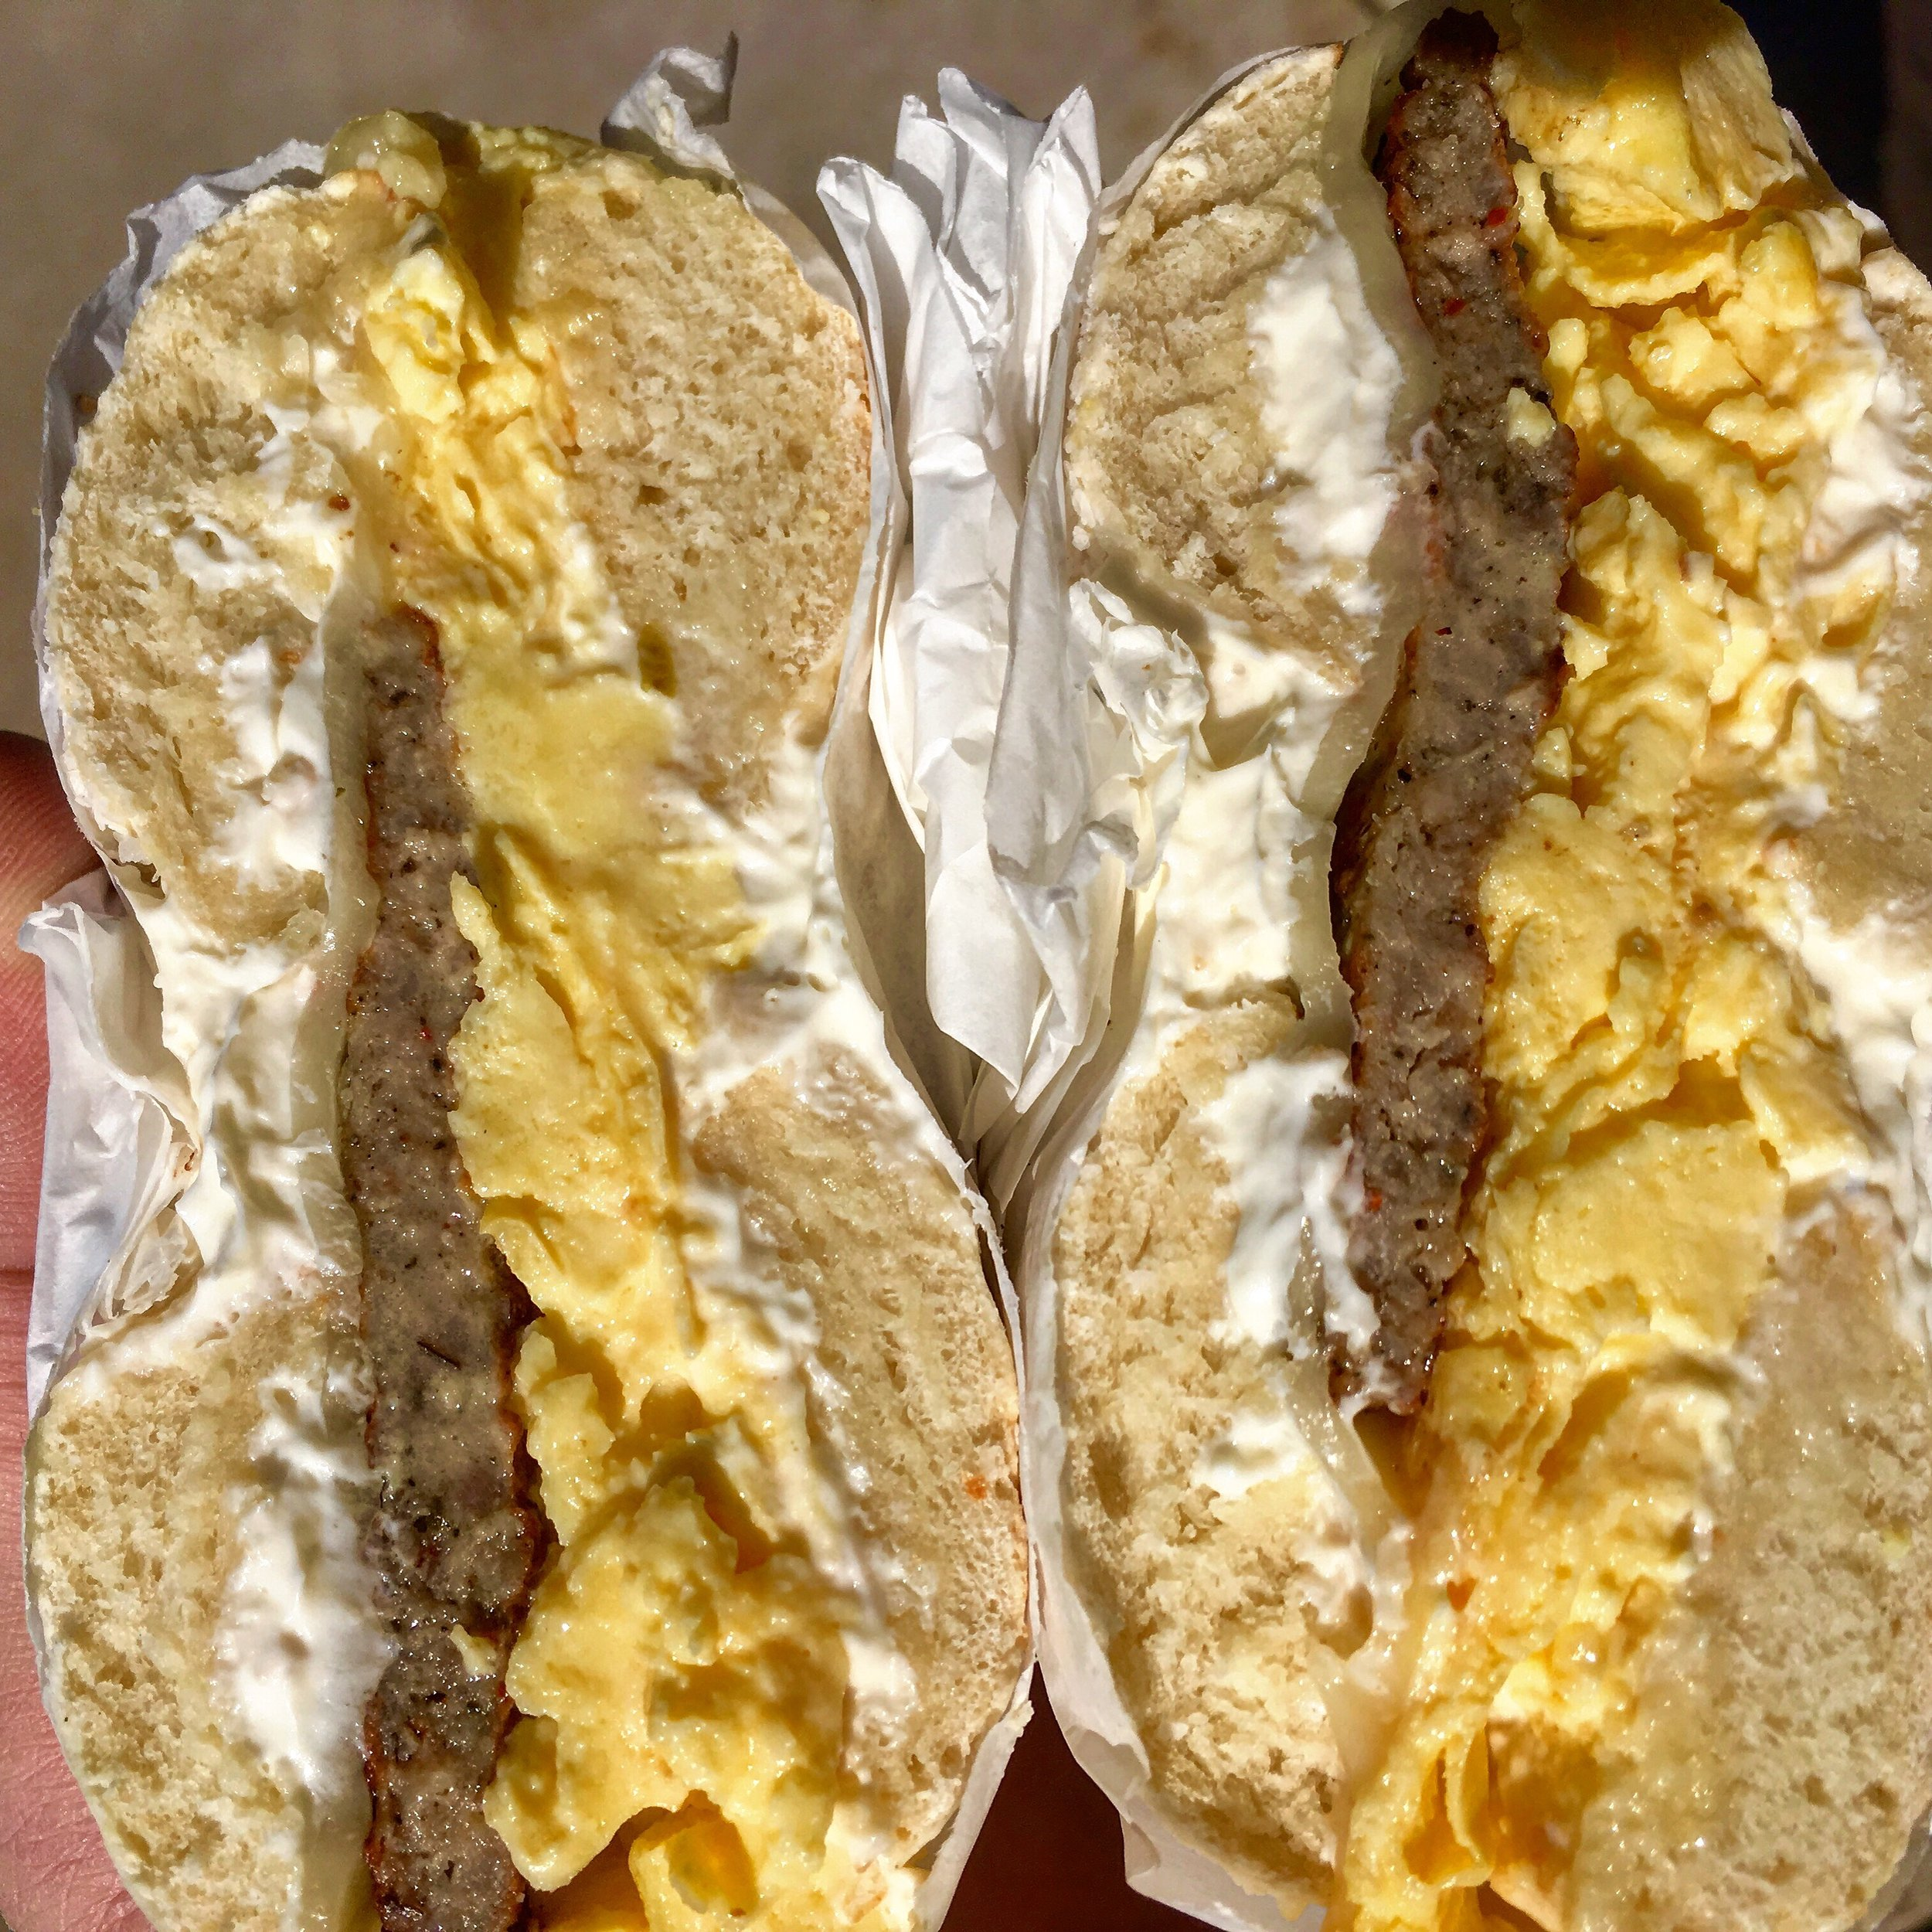 Salt bagel with sausage, egg and cheese from Wasatch Bagels.